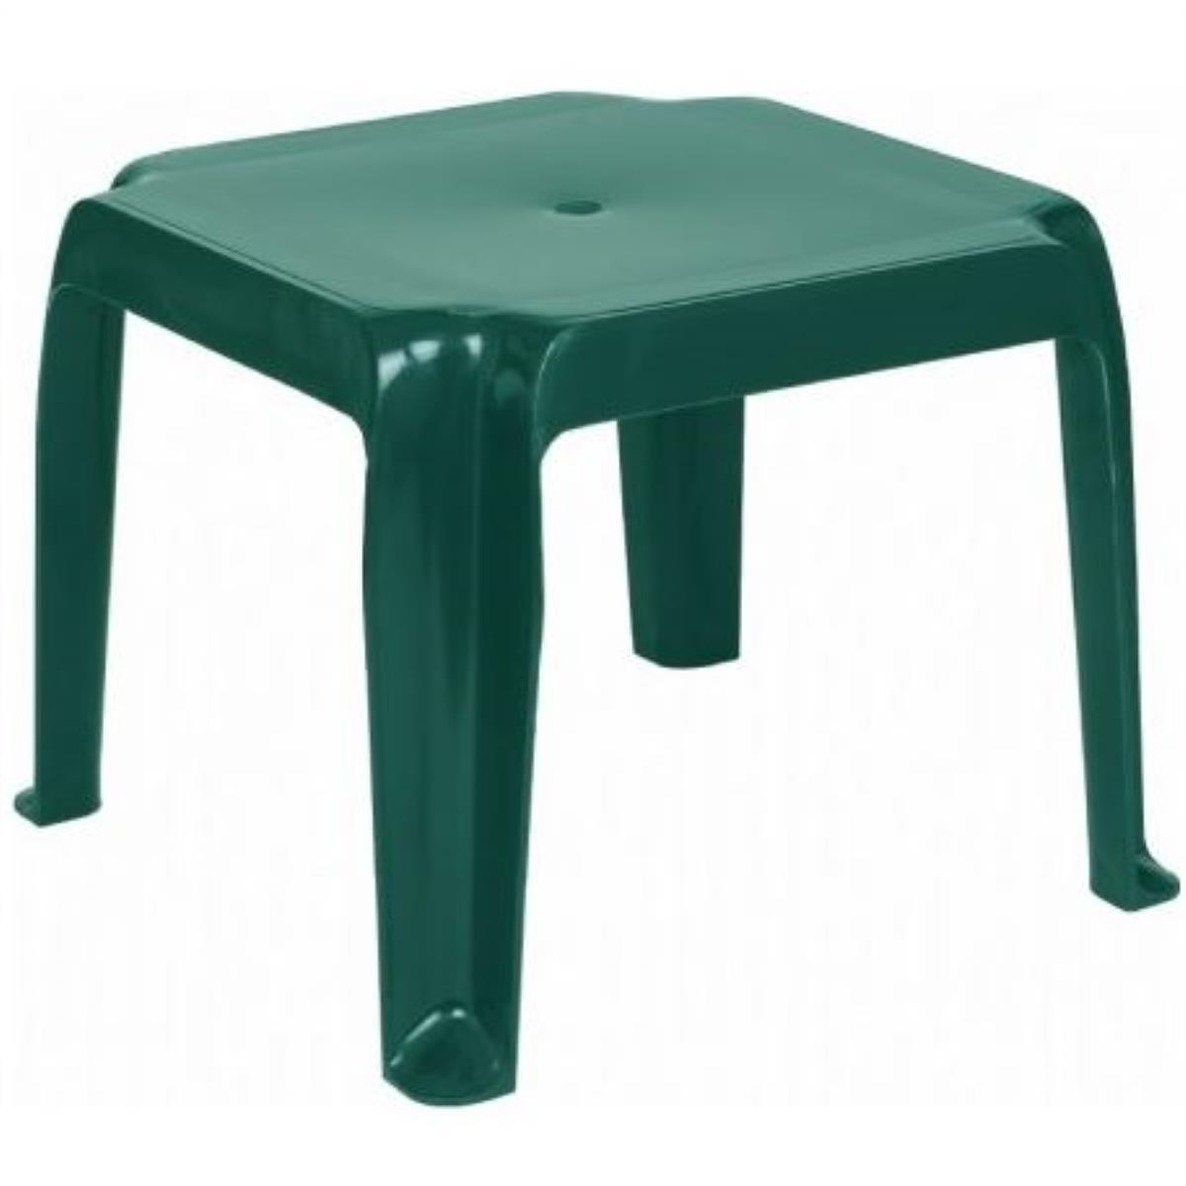 compamia gre sunray resin square outdoor side table green free shipping orders over garden bistro fruit drinks recipes dark brown coffee inch round holiday tablecloth frosted